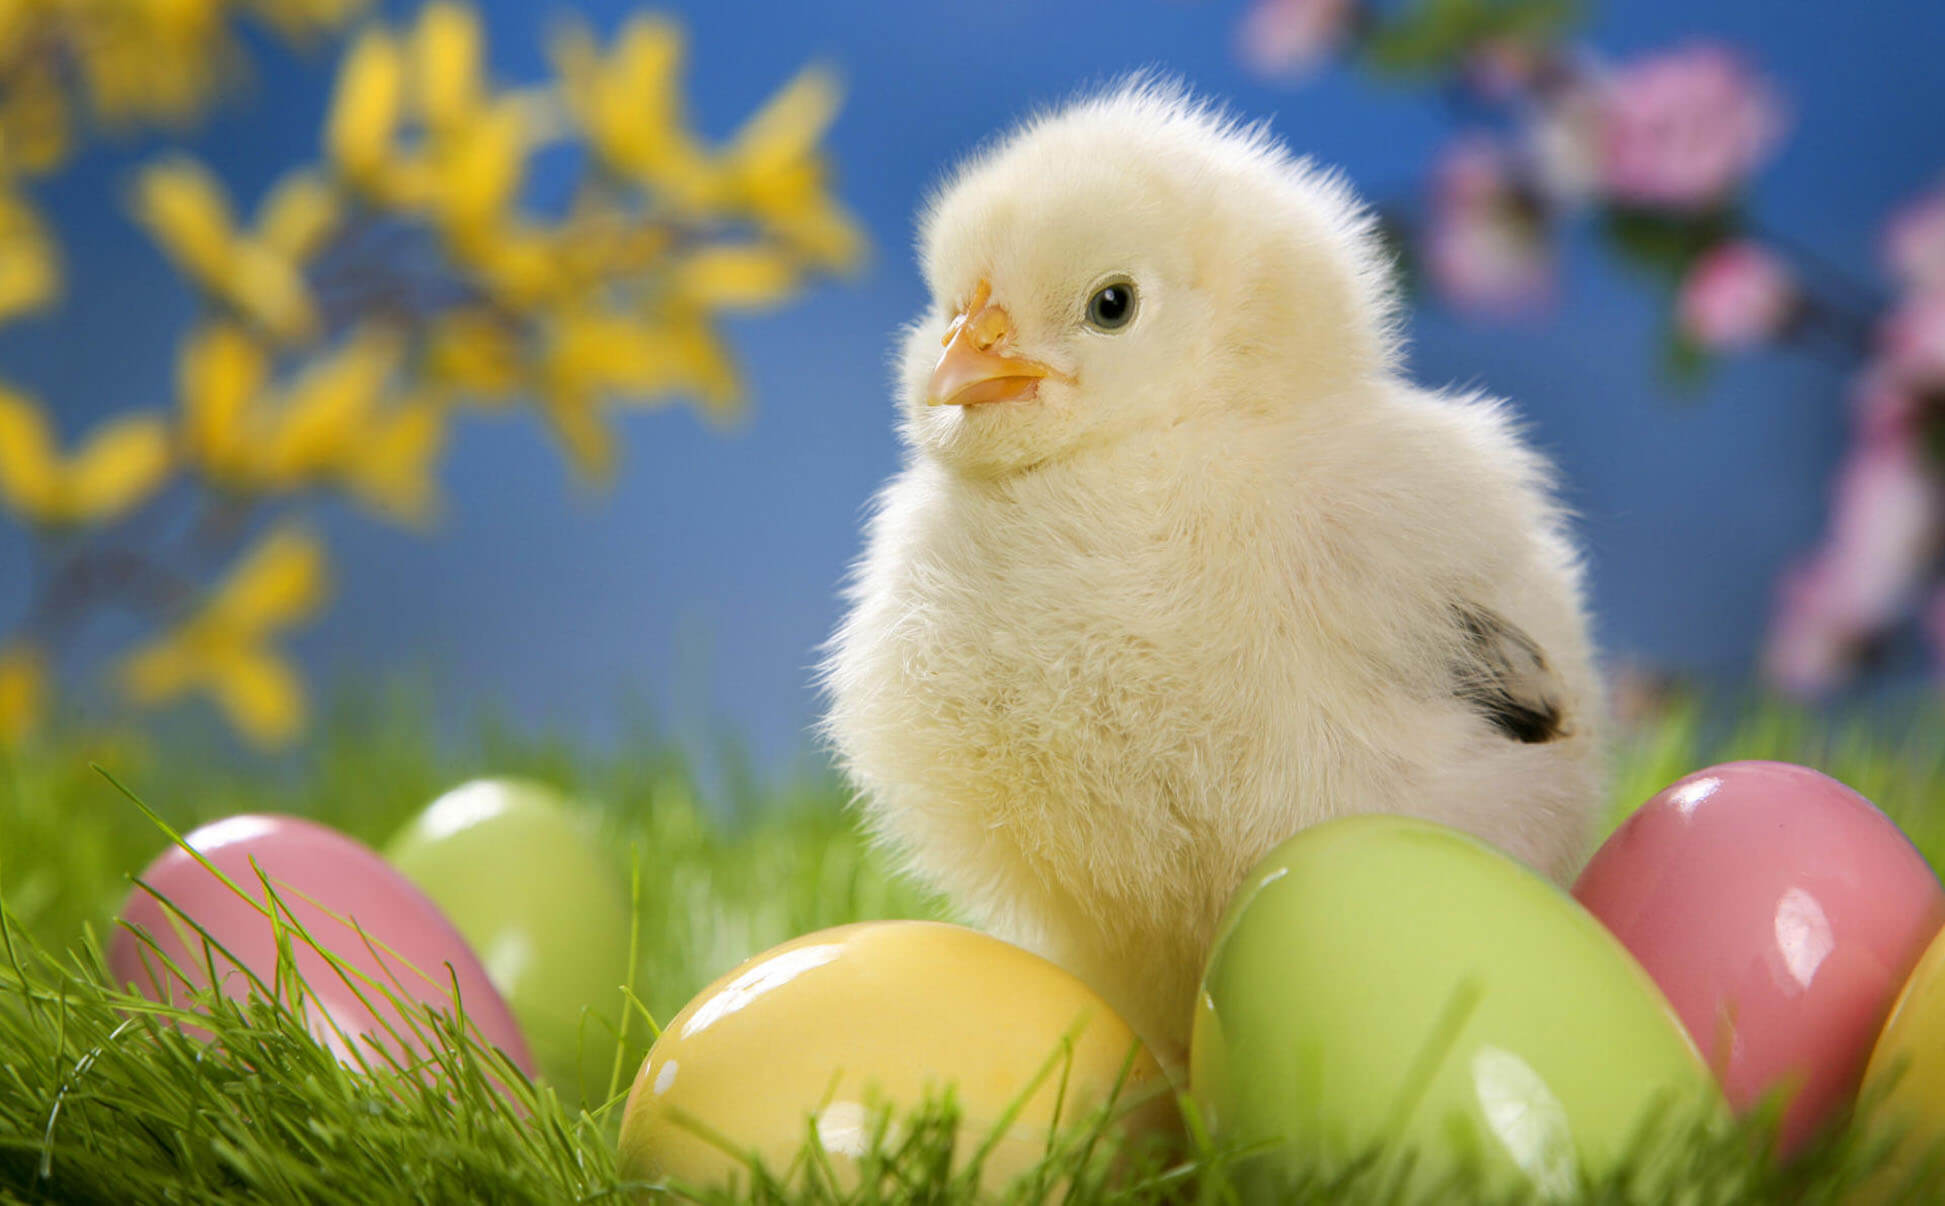 Chick Most Beautiful & Cute